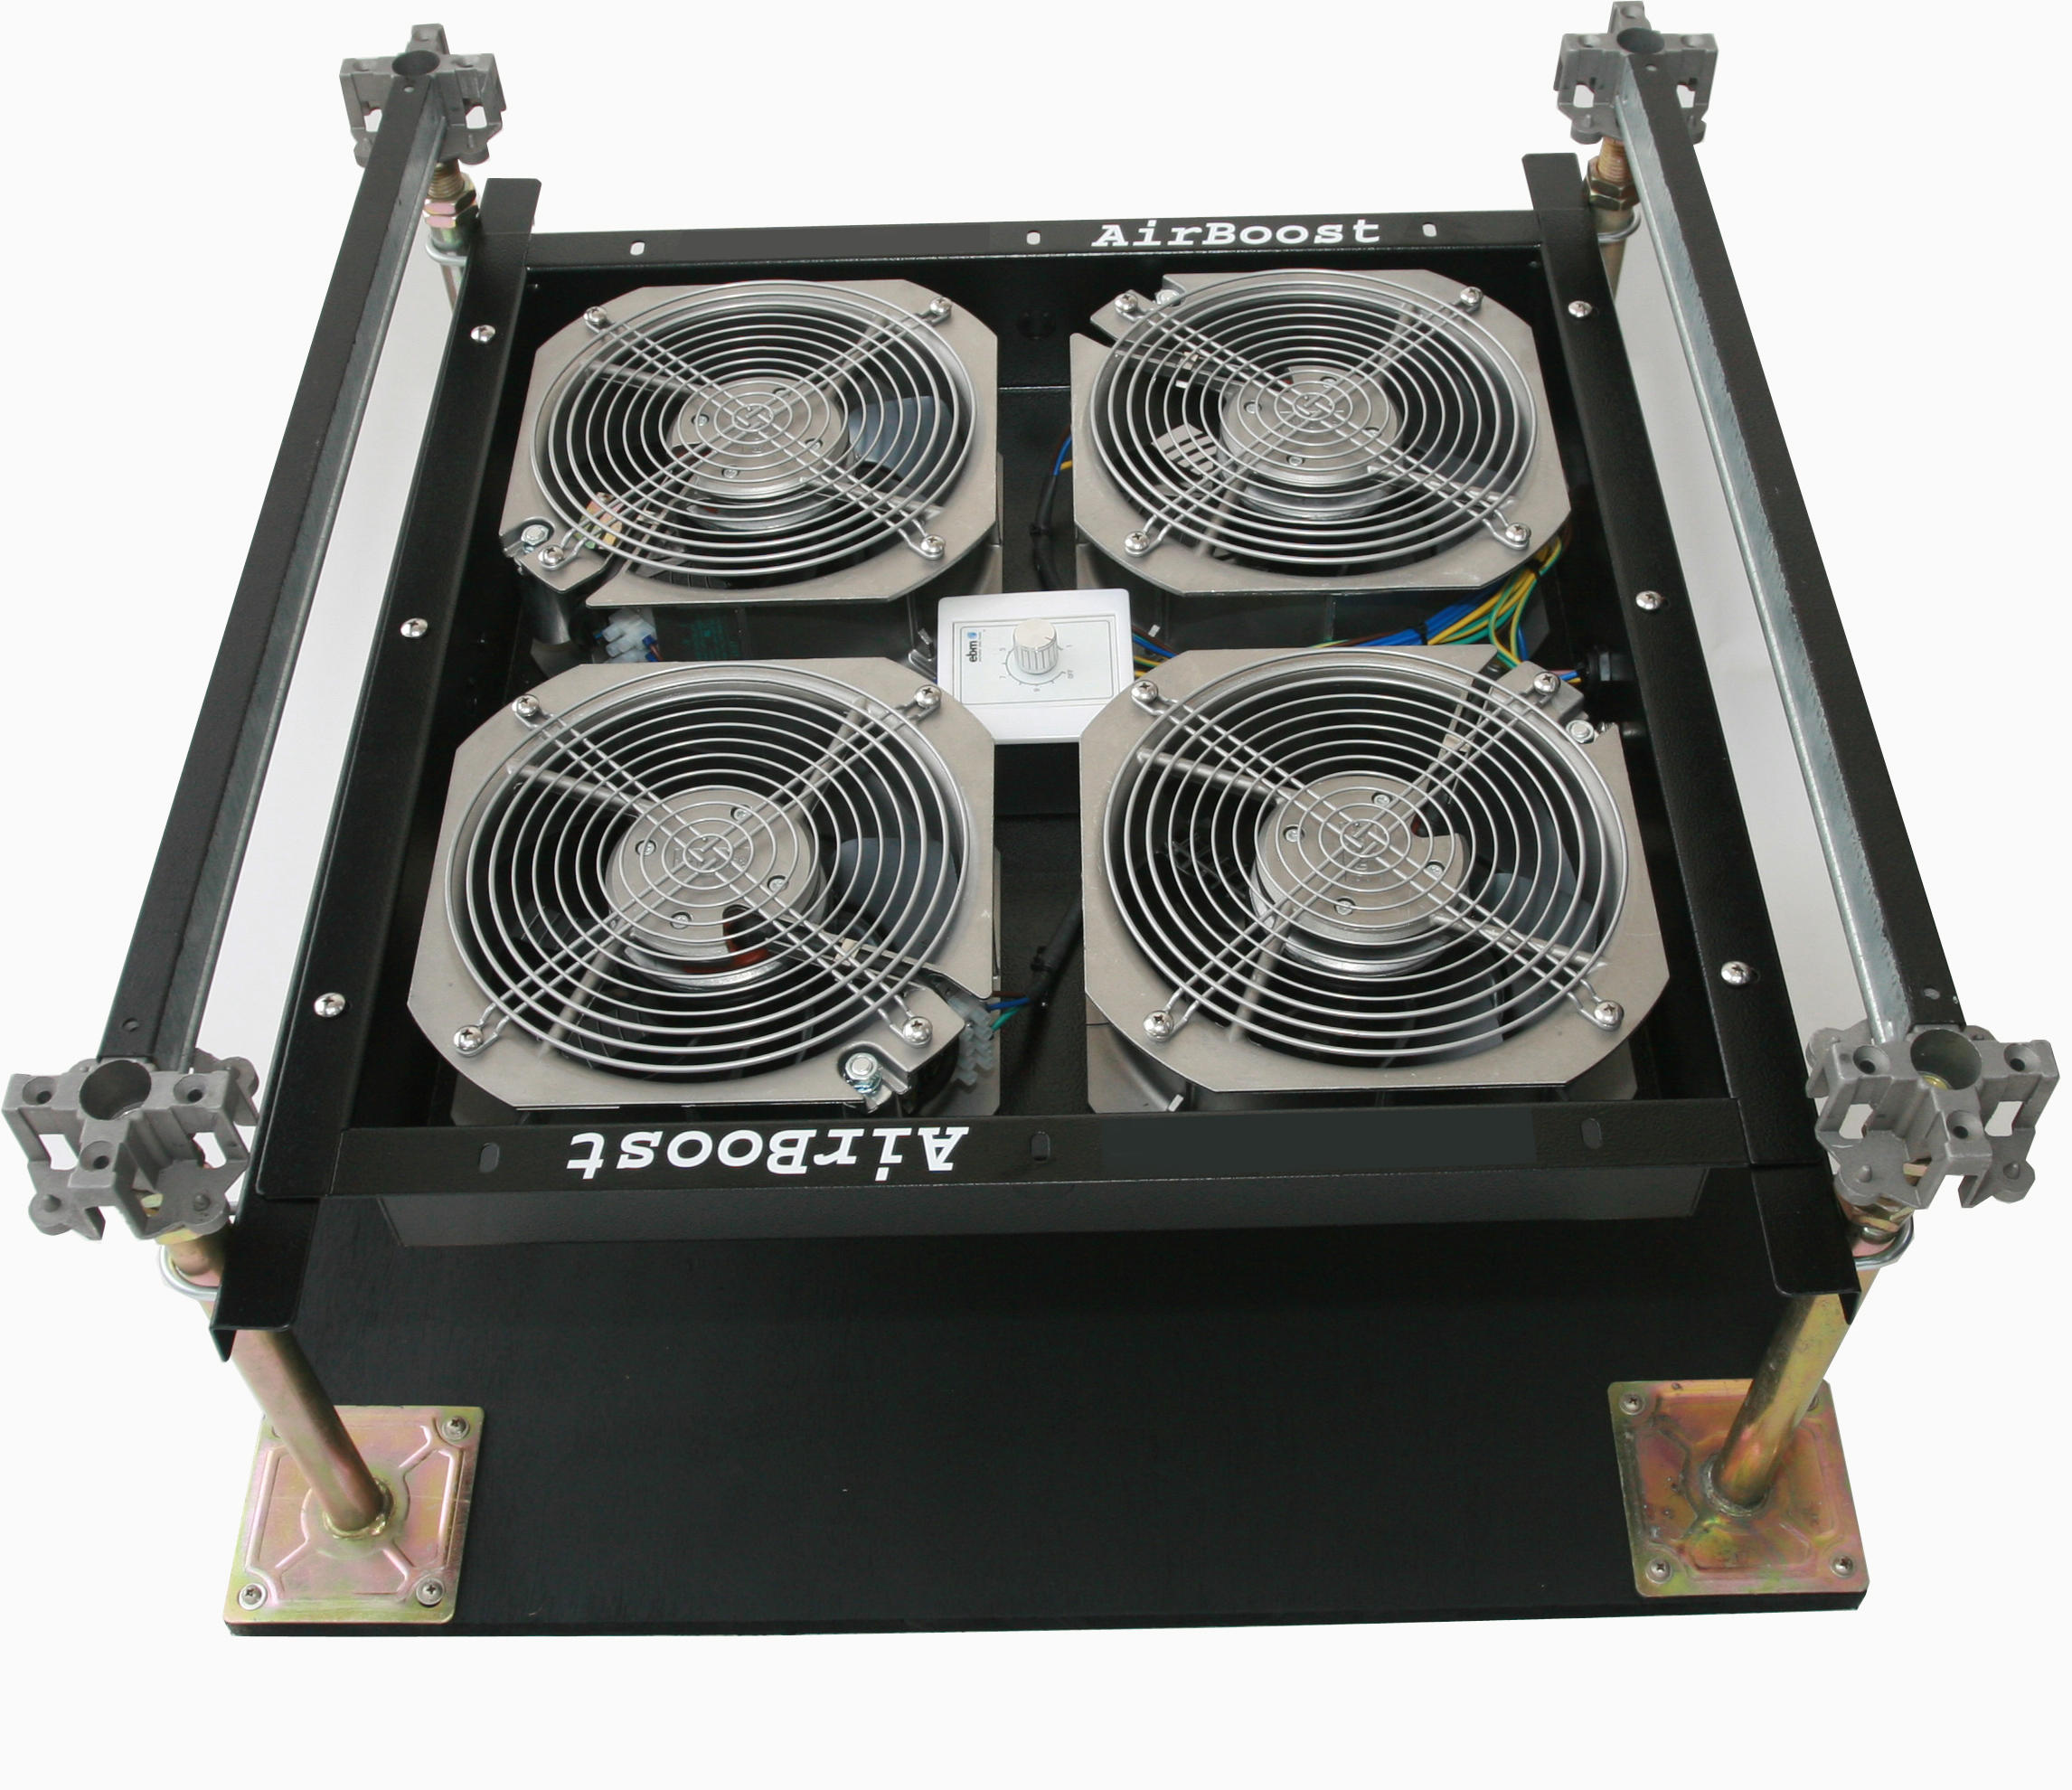 AirBoost-Under-Floor-Fan-System-Data-Center-1